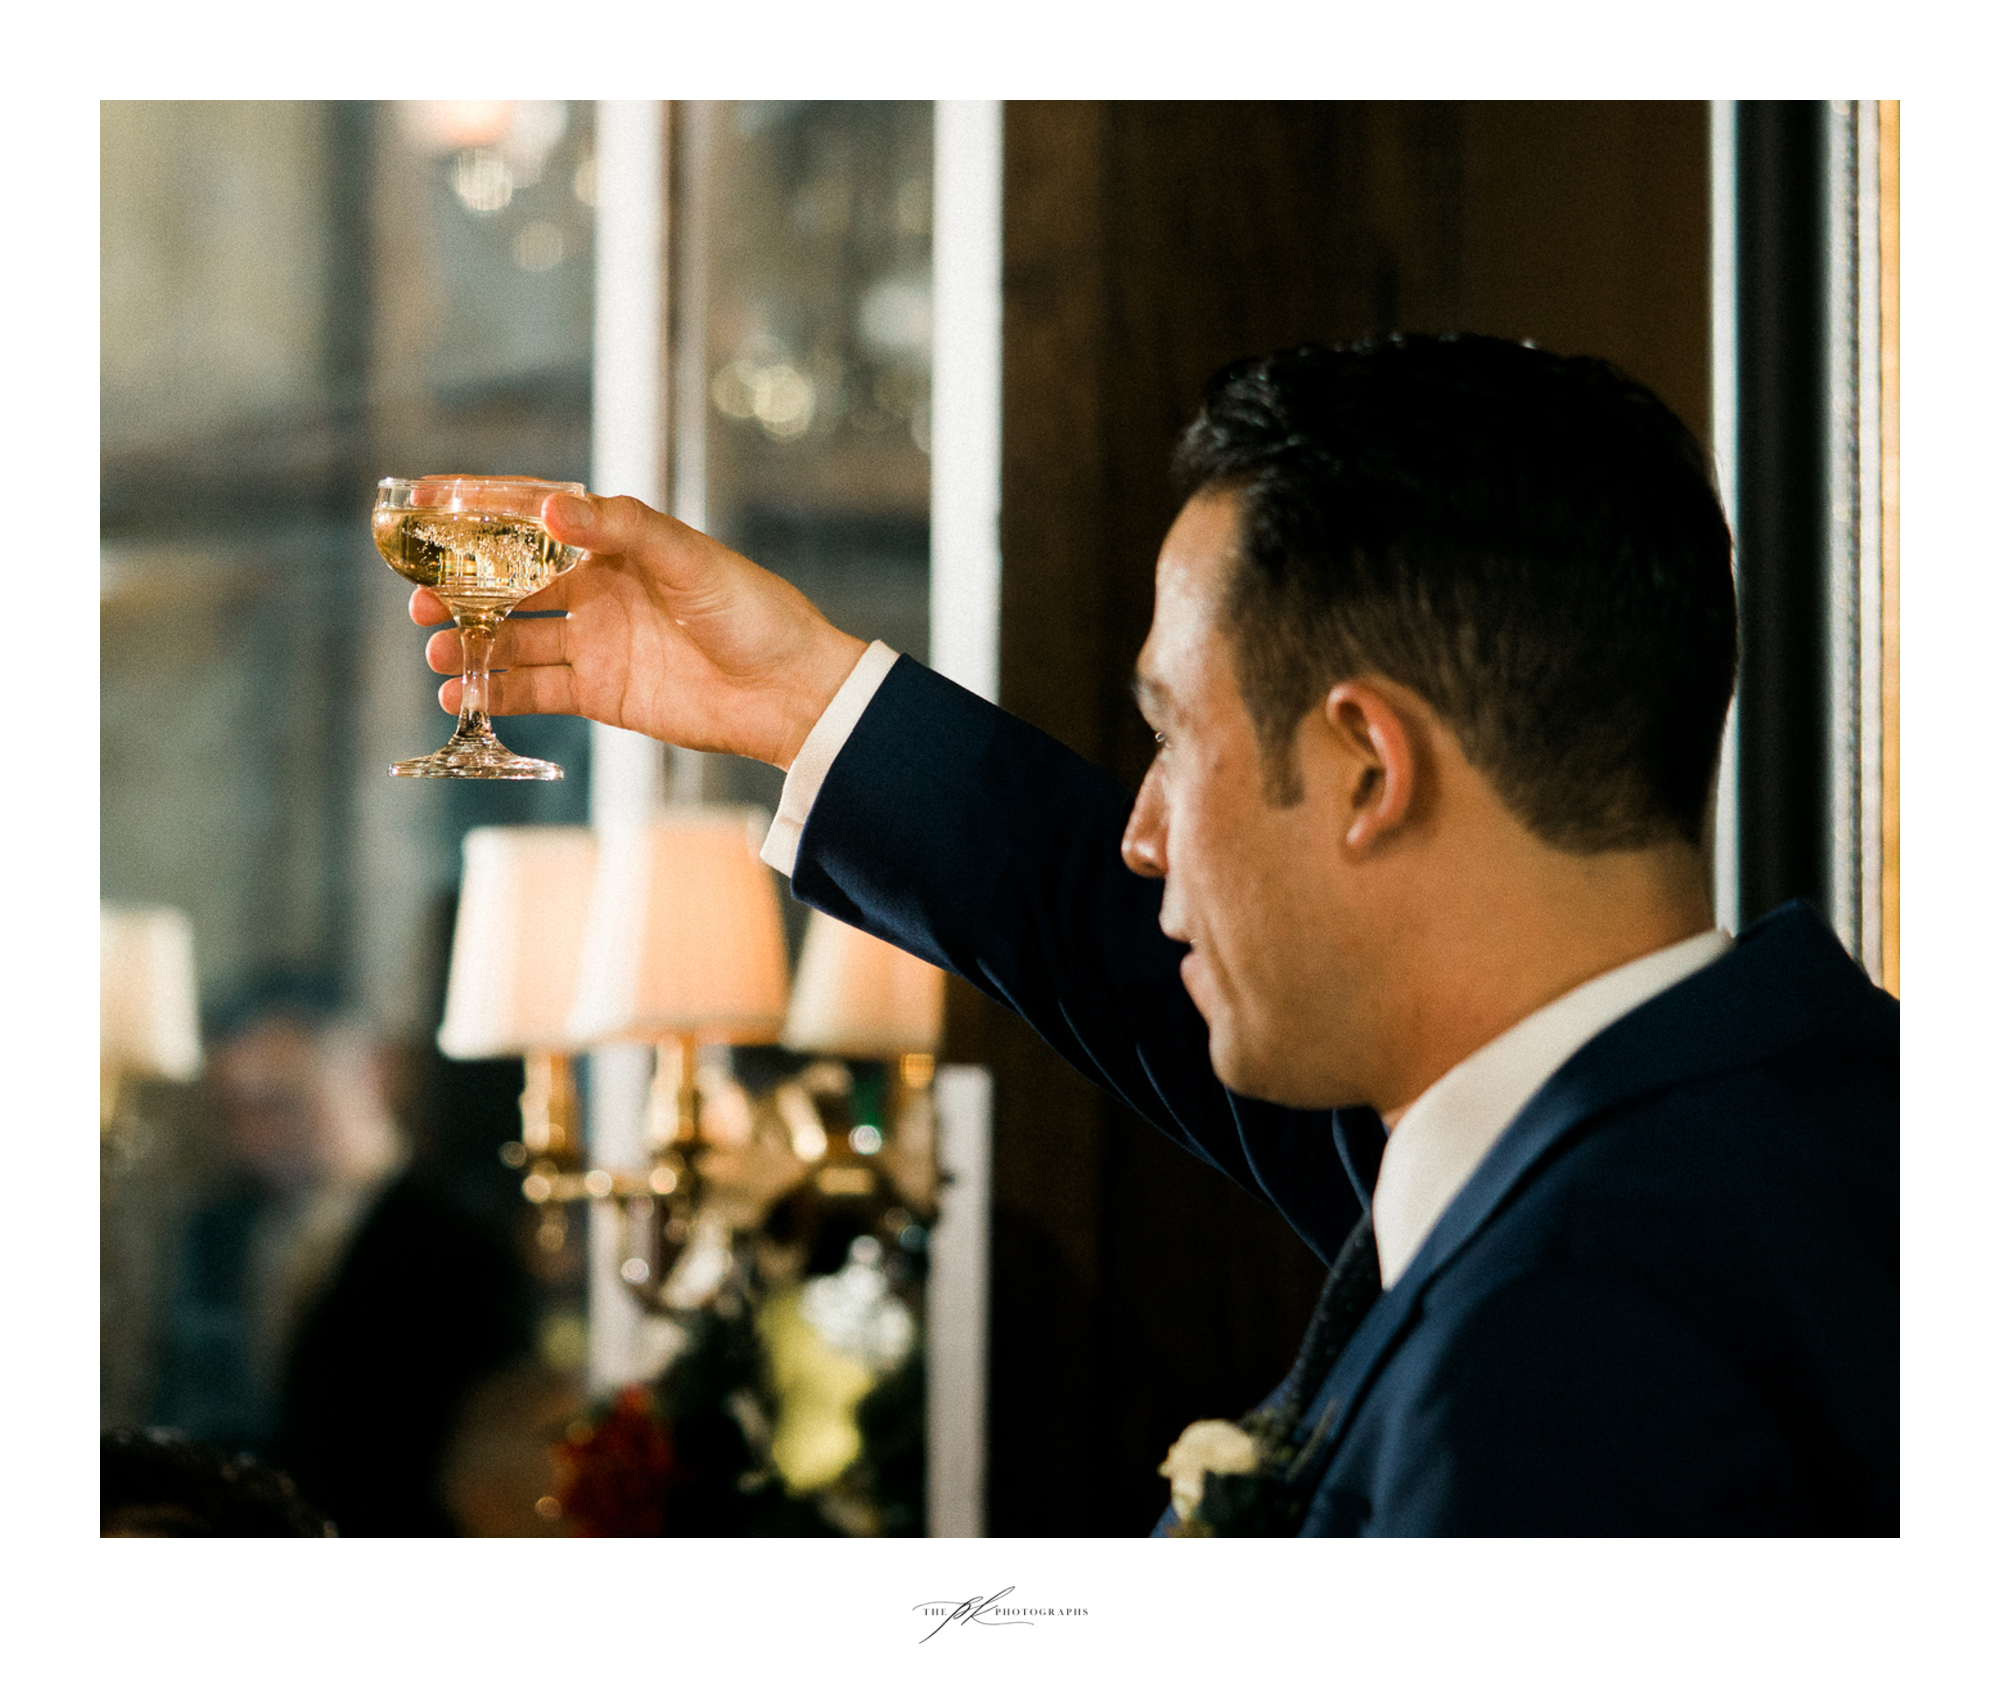 The groom toasting at his wedding reception.